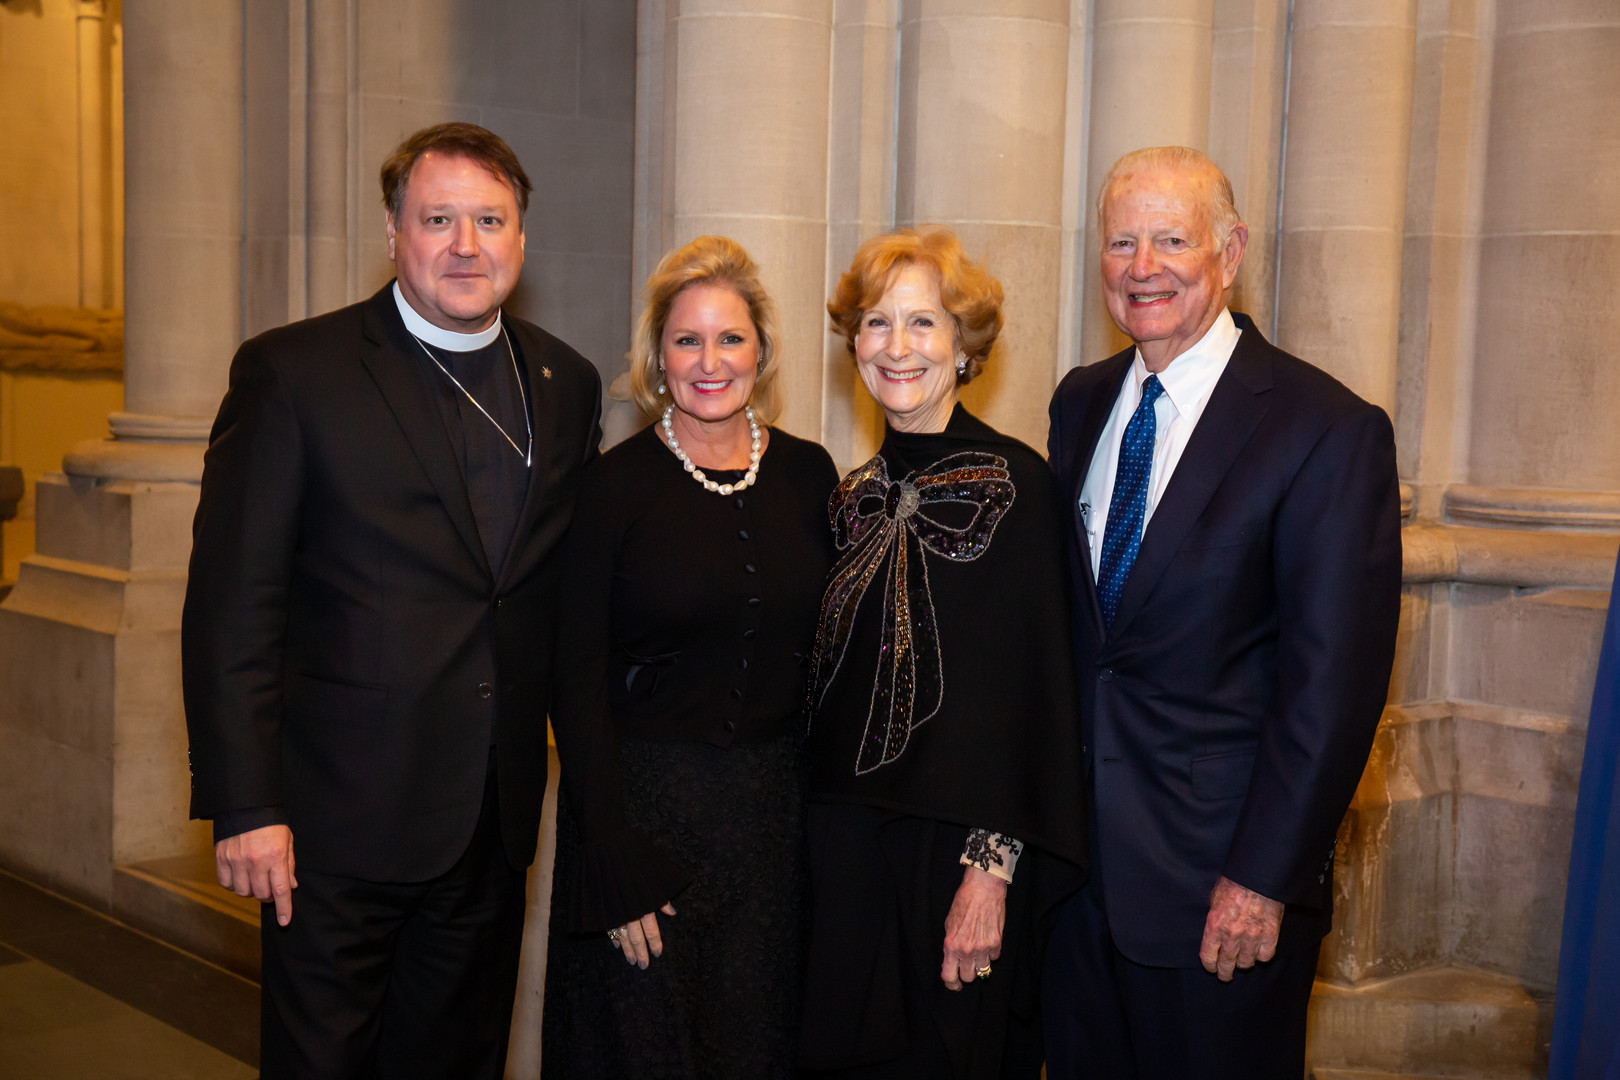 The Rev. Dr. Russell Levenson Jr. and Laura Levenson, Honorees Susan G. Baker and Secretary James A. Baker, III.